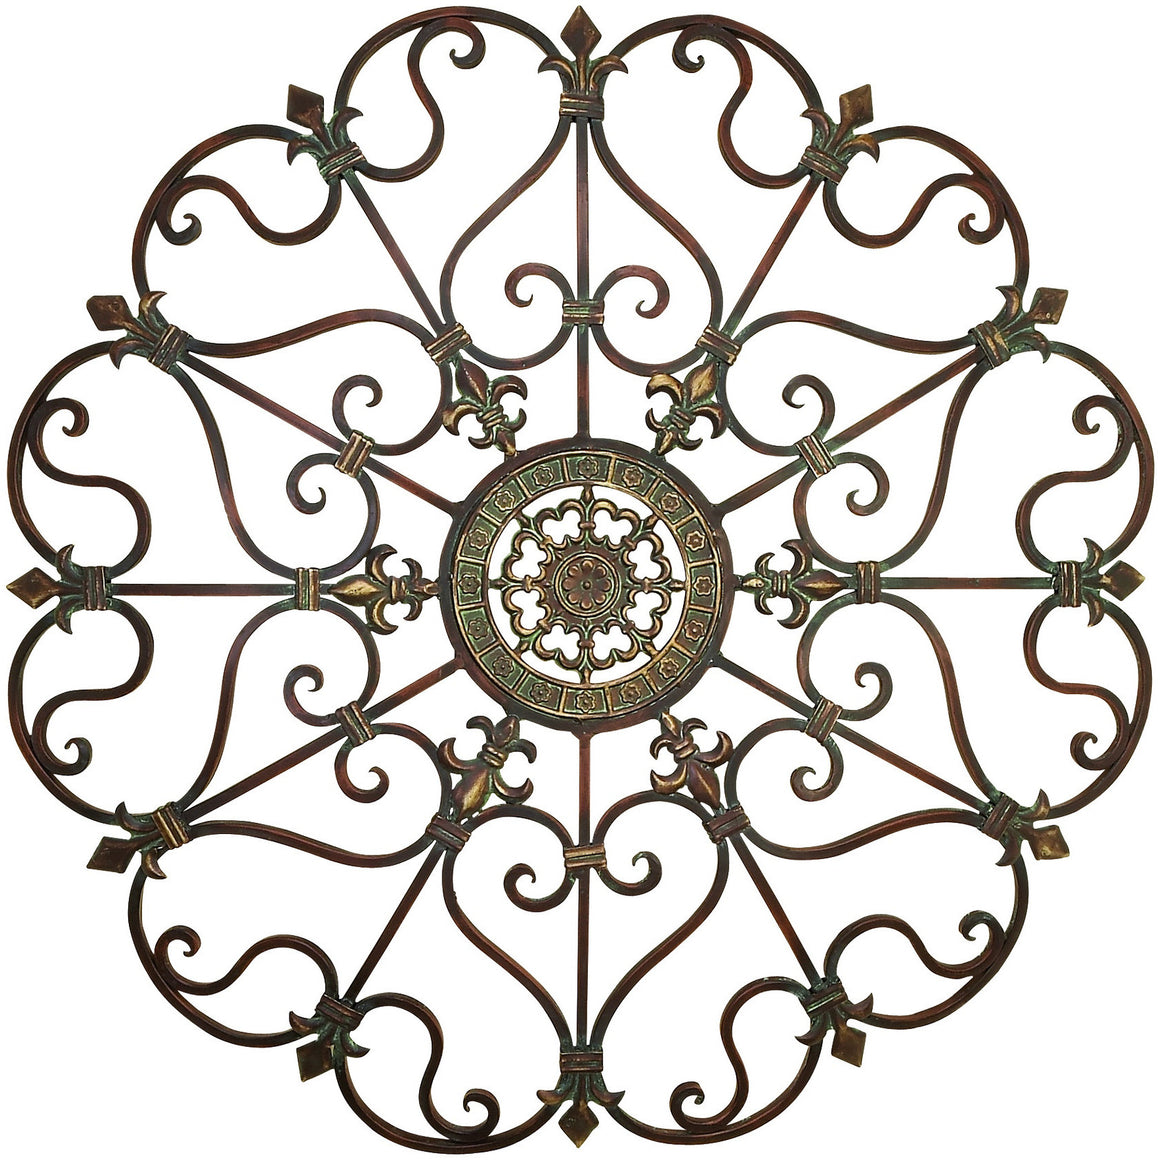 Benzara Inc 50094 Old World Round metal Wall Art